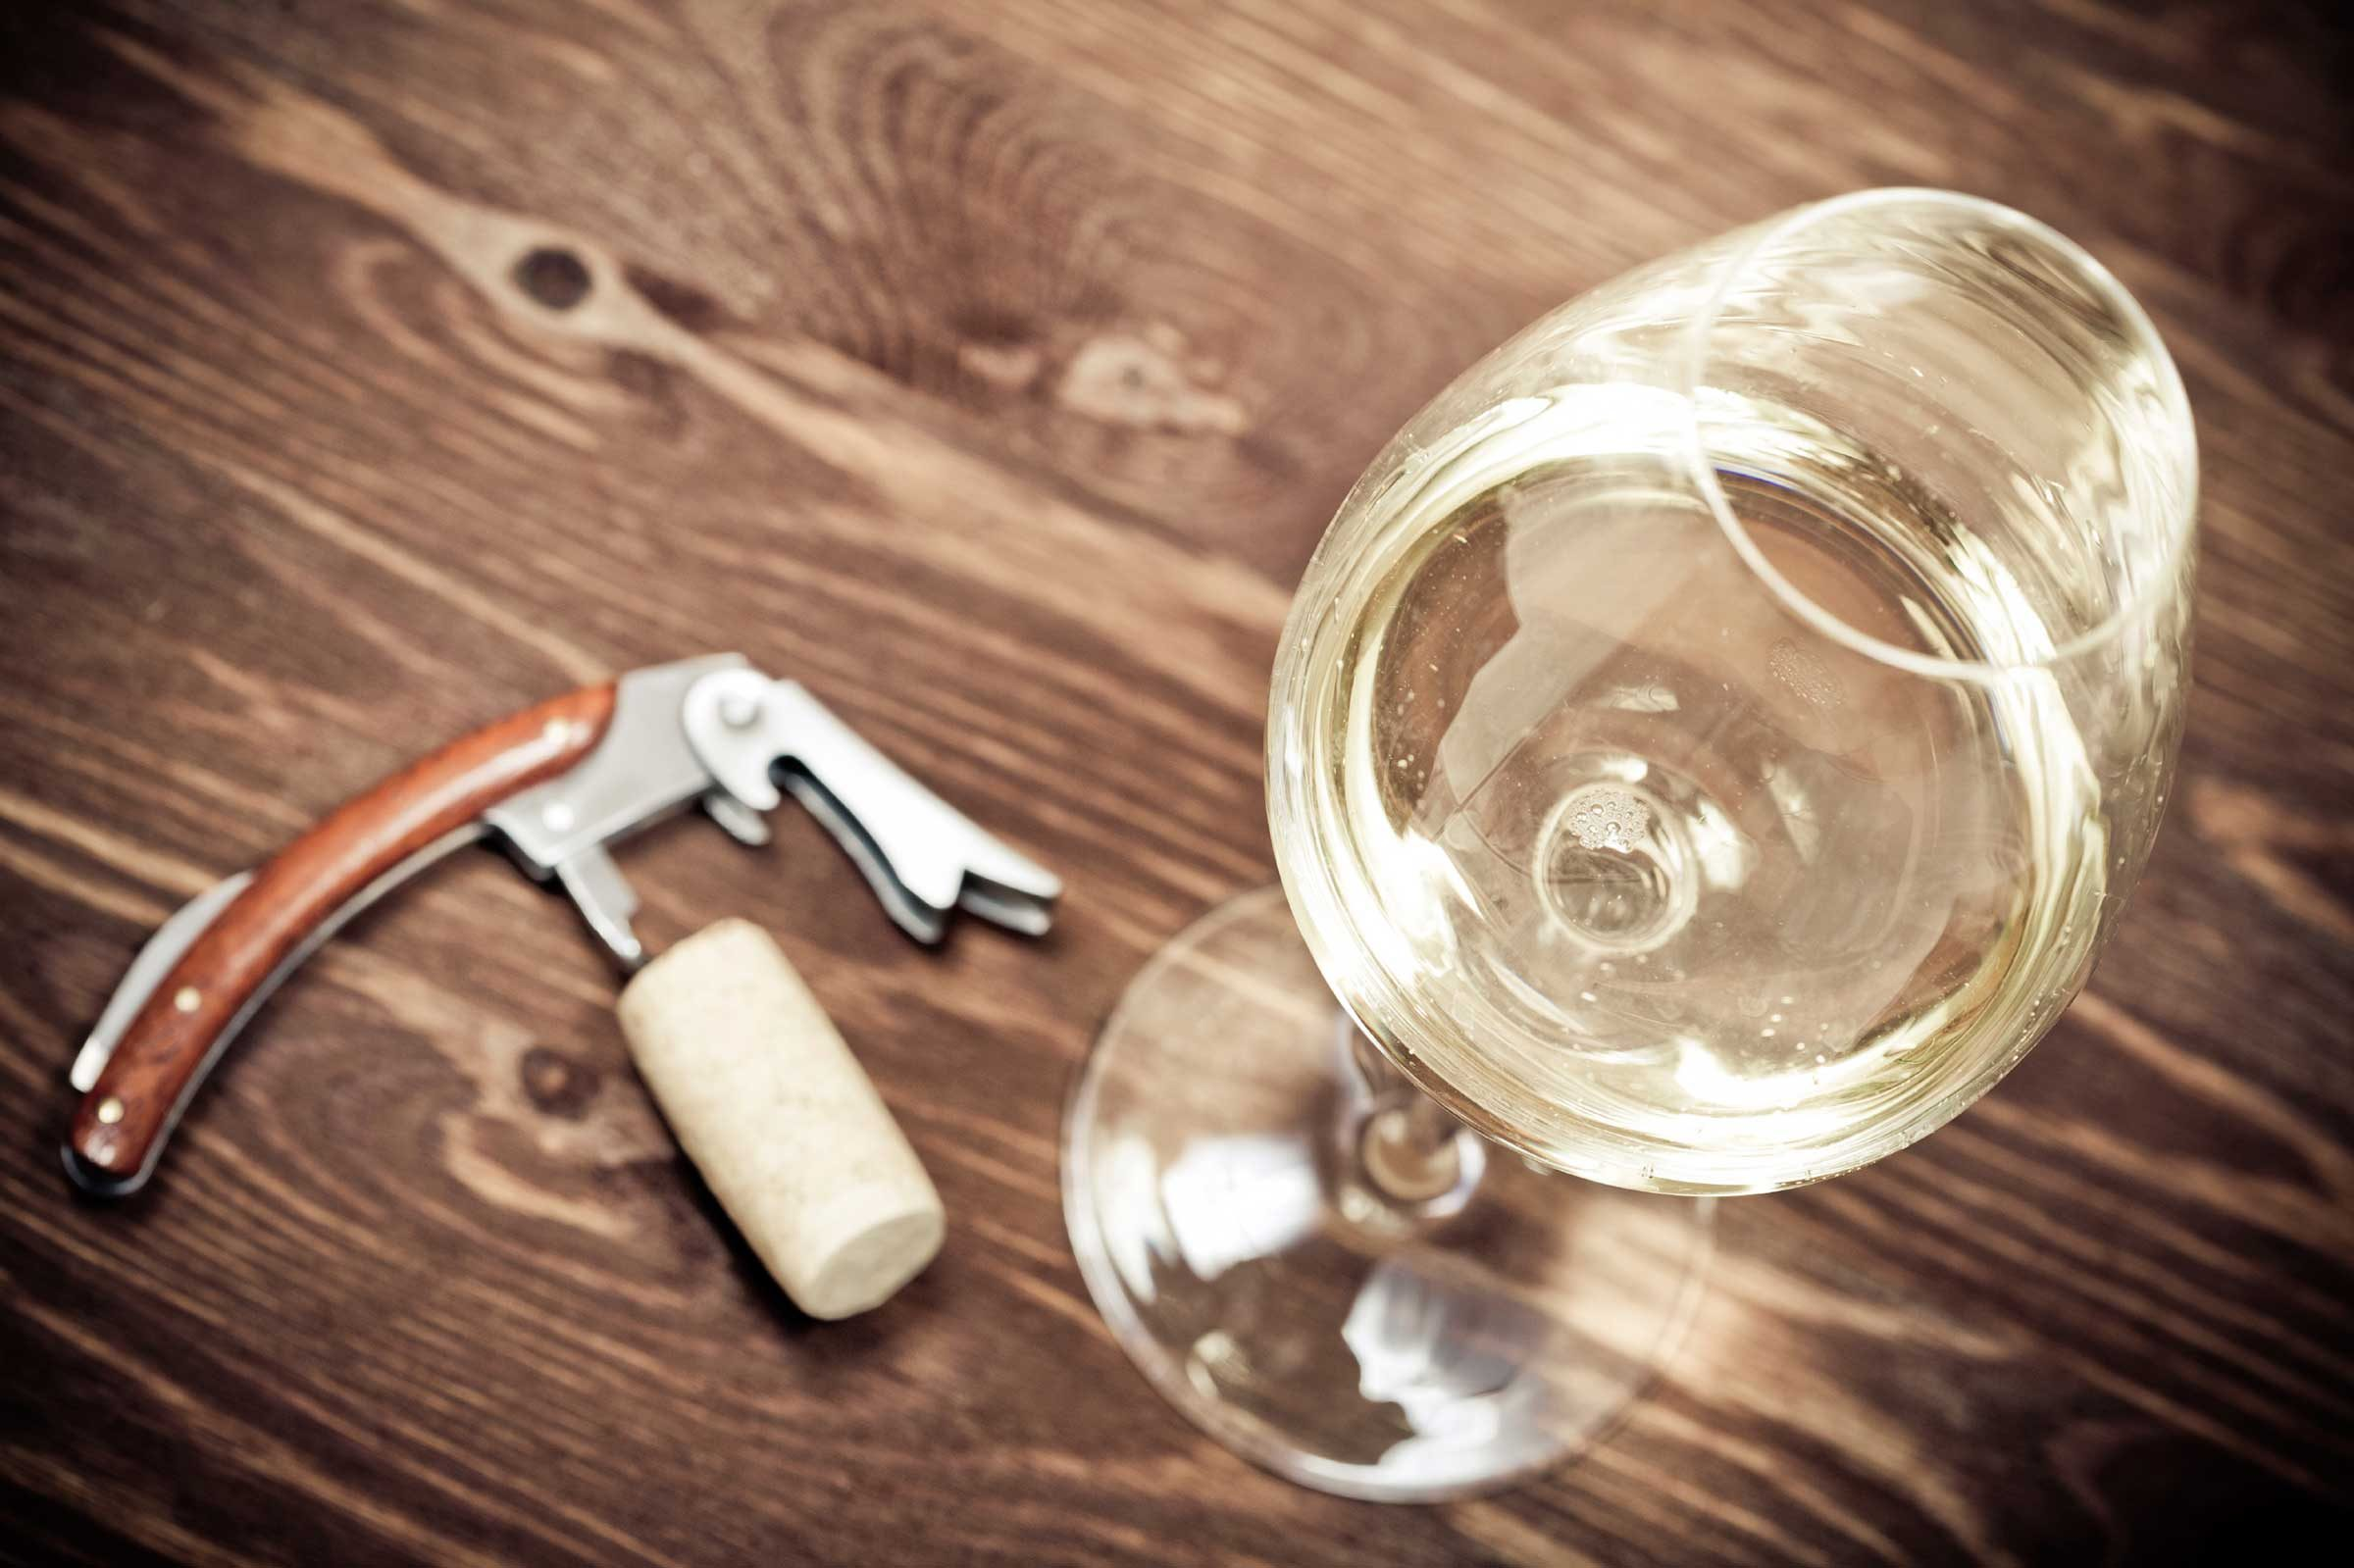 White wine: 121 calories per glass